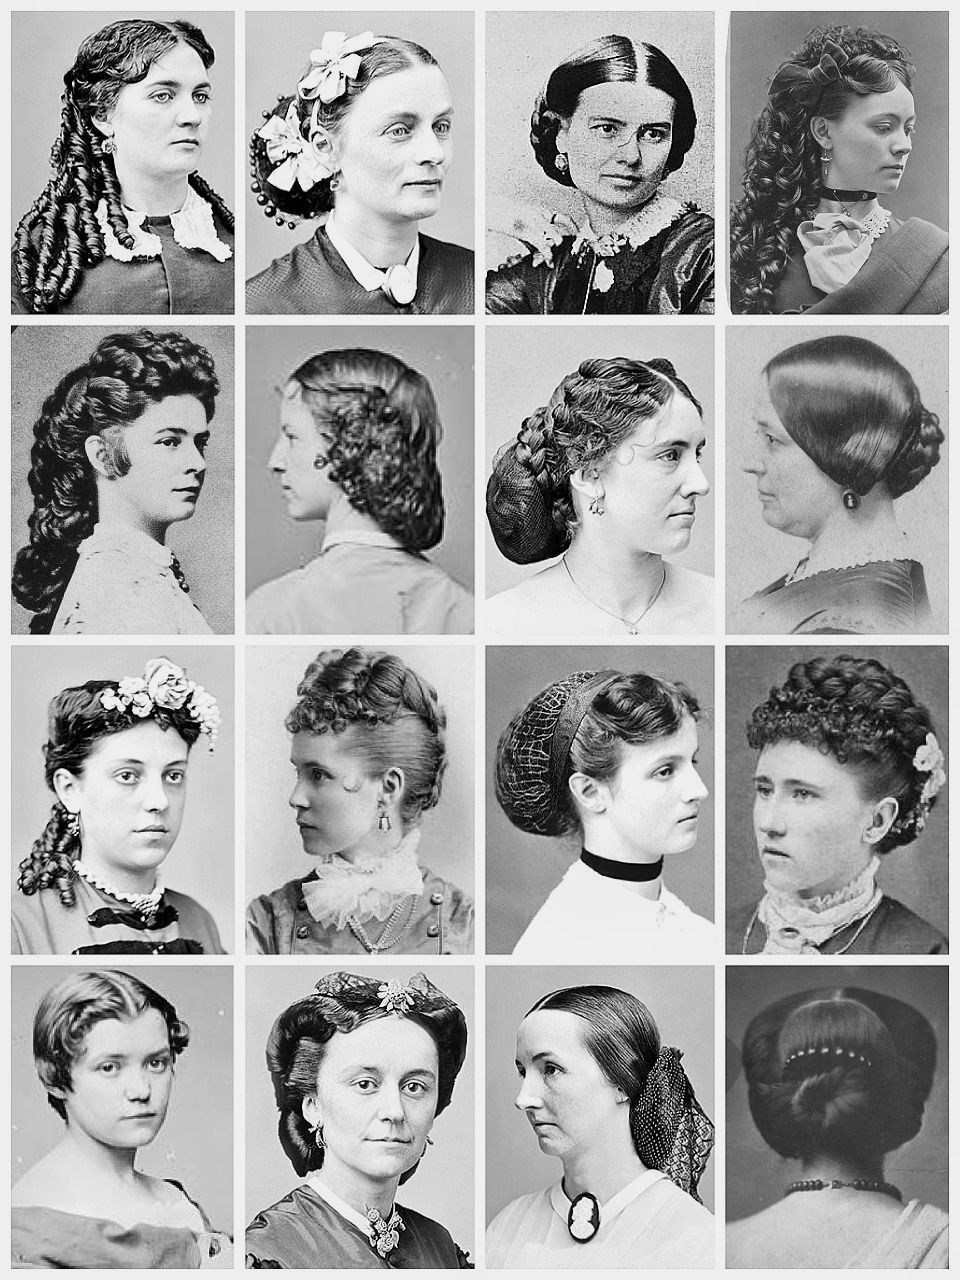 The 1885 Hairstyle Near The End Single Photo Looks The Most Like 33r 2nd Row Far Righ Edwardian Hairstyles Victorian Hairstyles Victorian Era Hairstyles